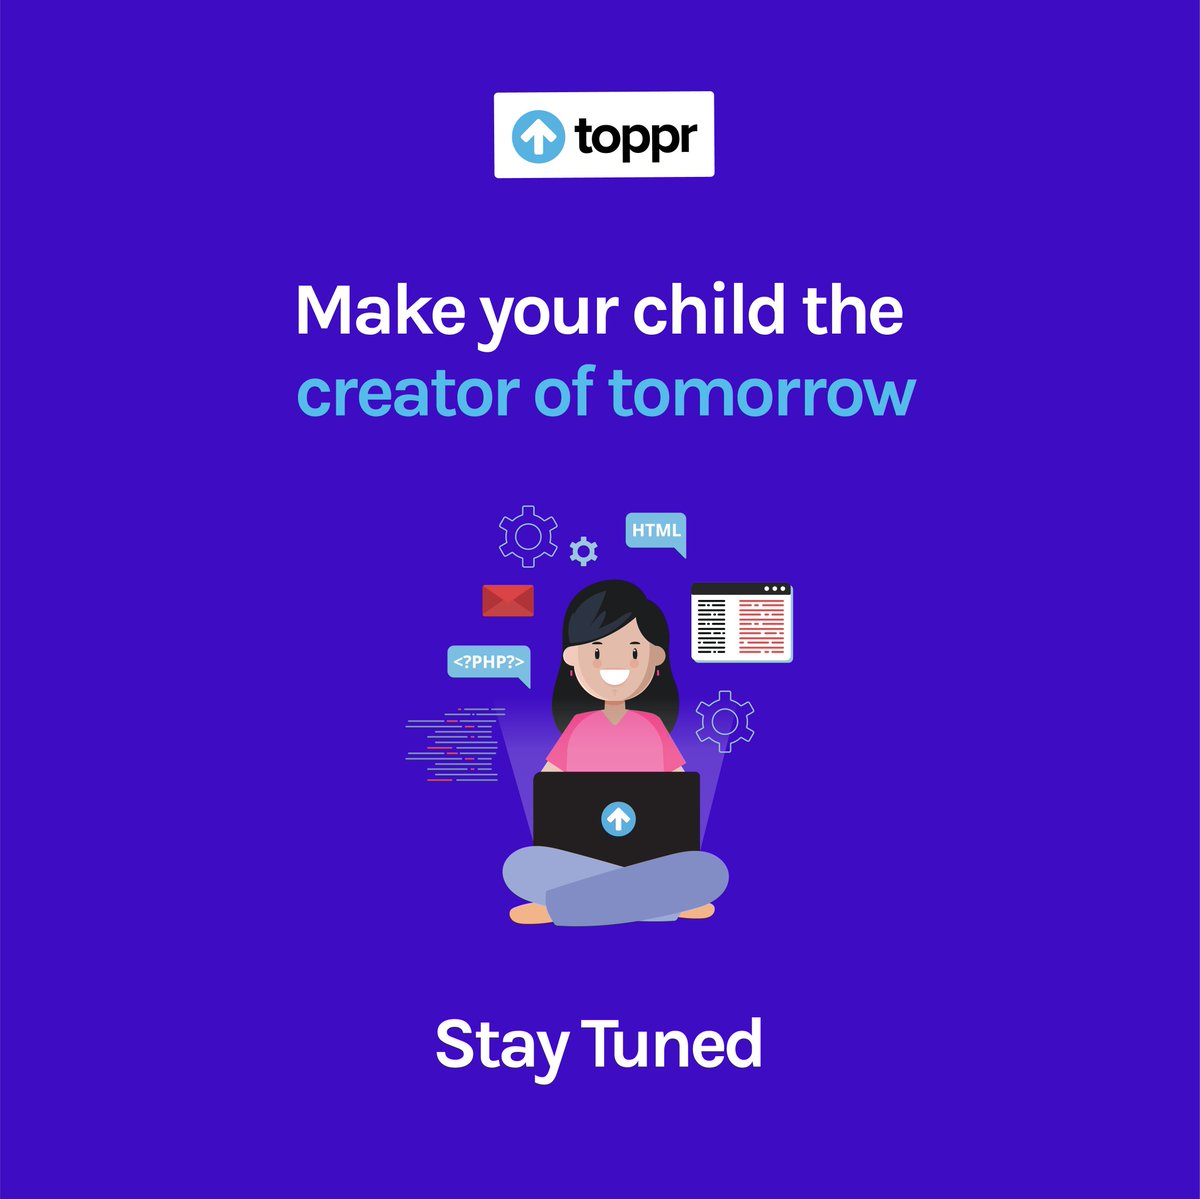 Empower your child with the 21st century skills. Stay tuned. #StayTuned https://t.co/xWlMU6VquH